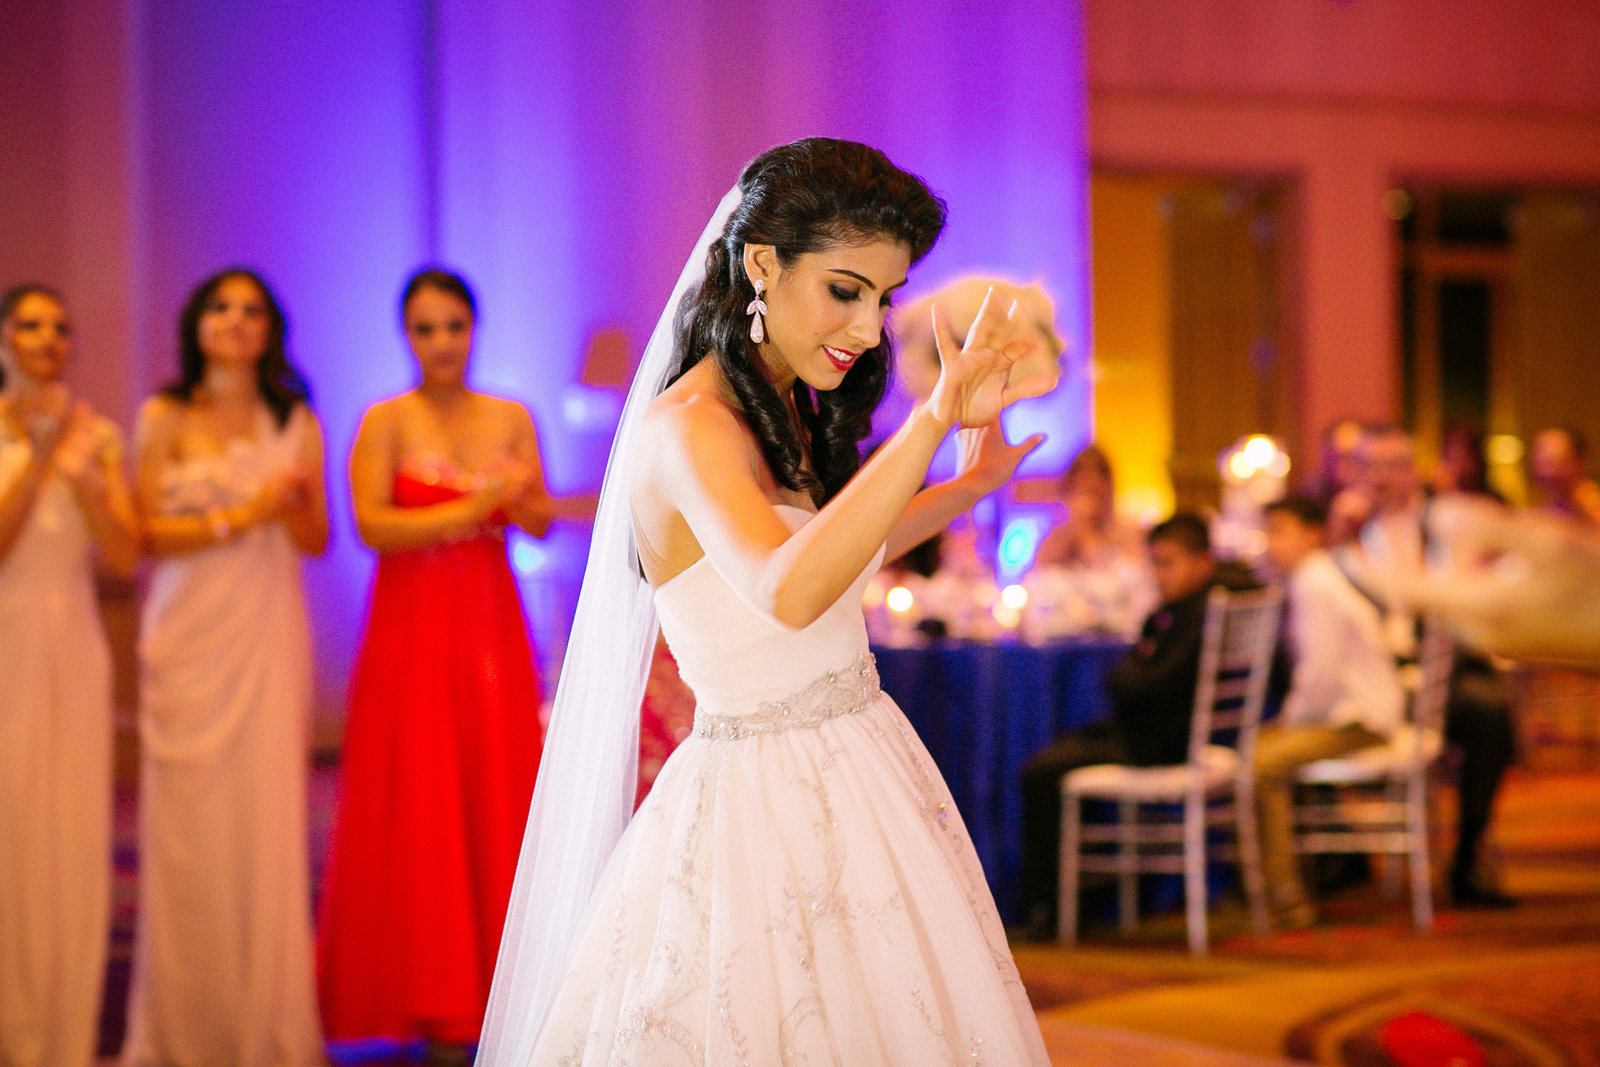 Bride dancing at Landsdowne Resort